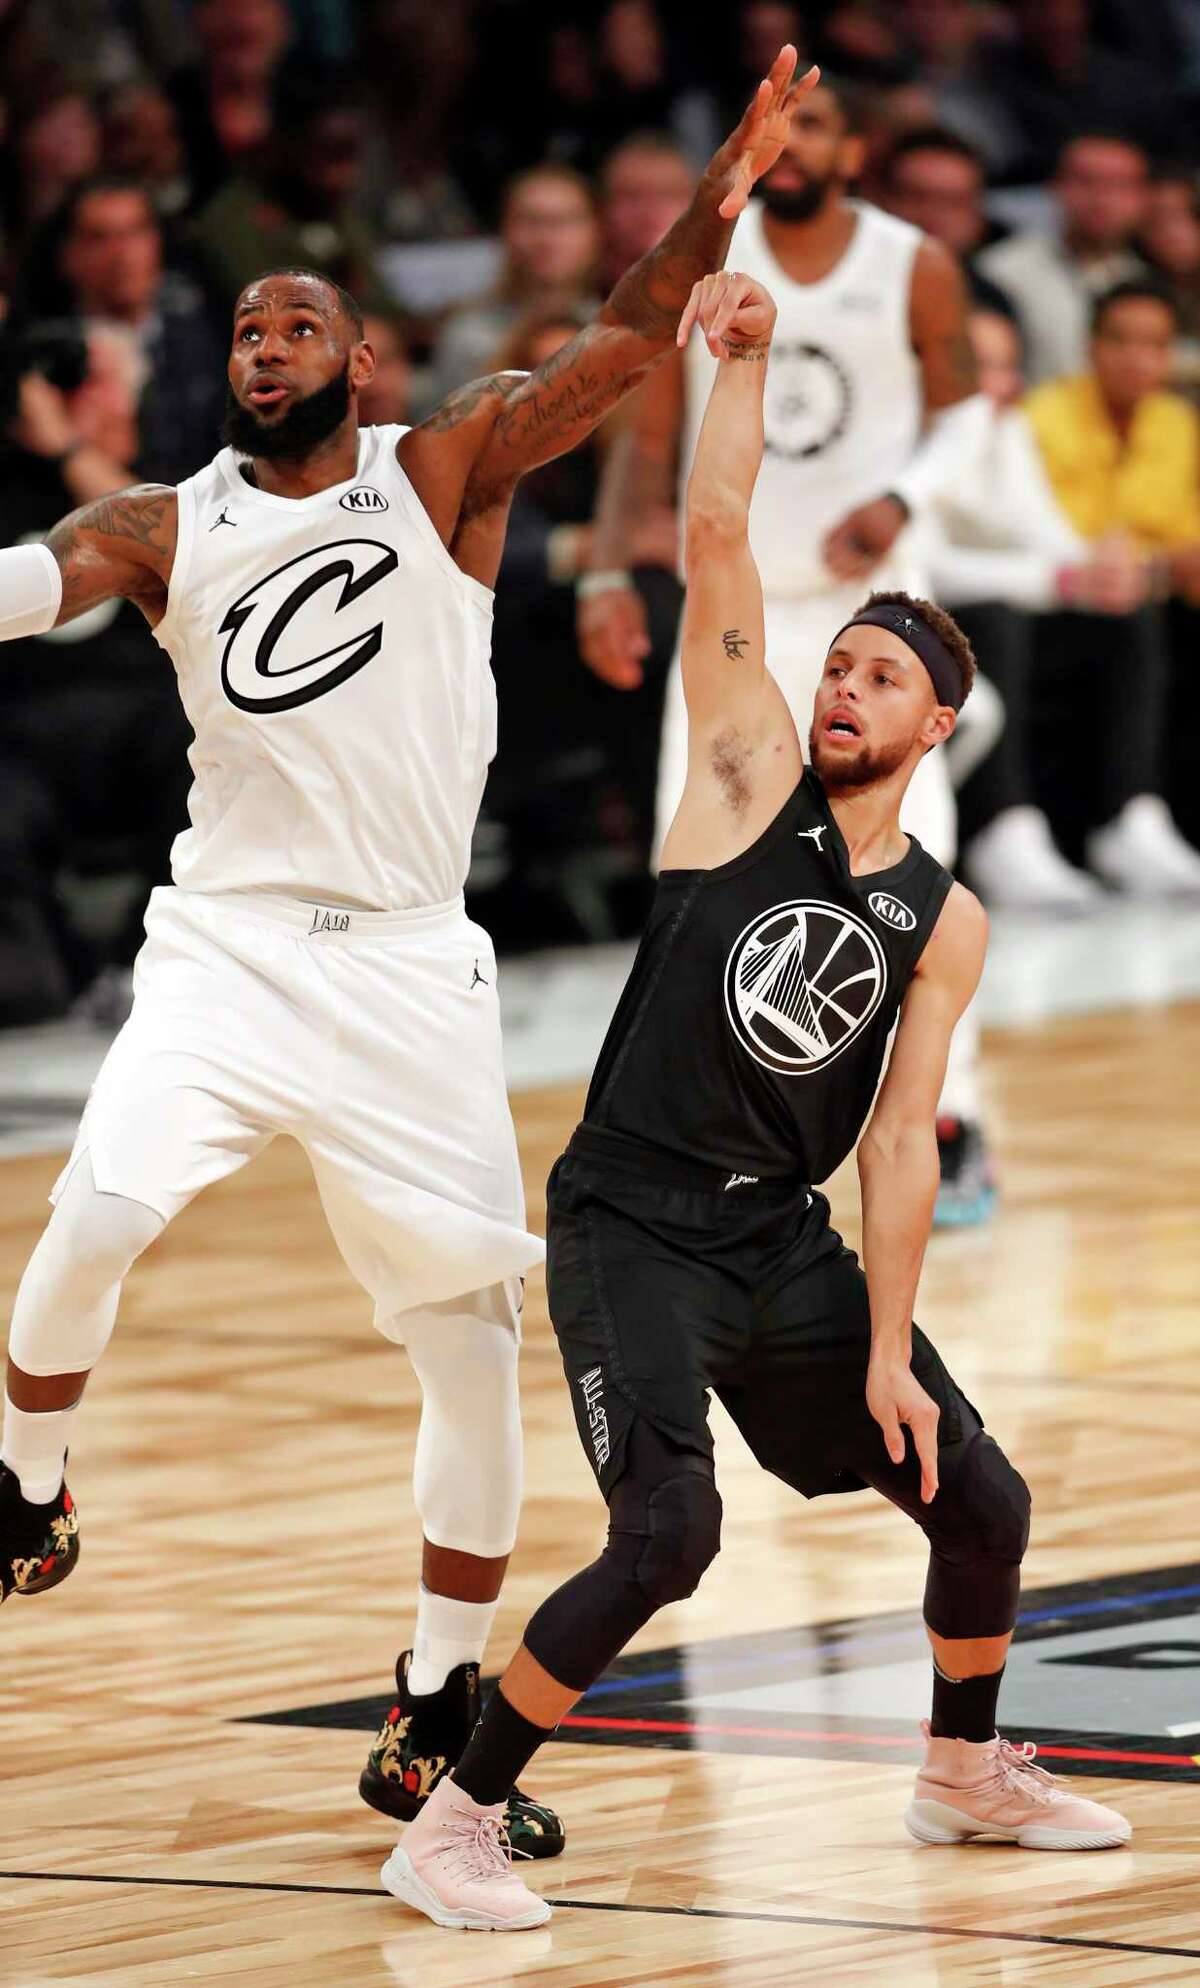 Team Stephen's Stephen Curry and Team LeBron's LeBron James watch Curry's 3-point attempt in 2nd quarter during NBA All Star Game at Staples Center in Los Angeles, Calif., on Sunday, February 18, 2018.